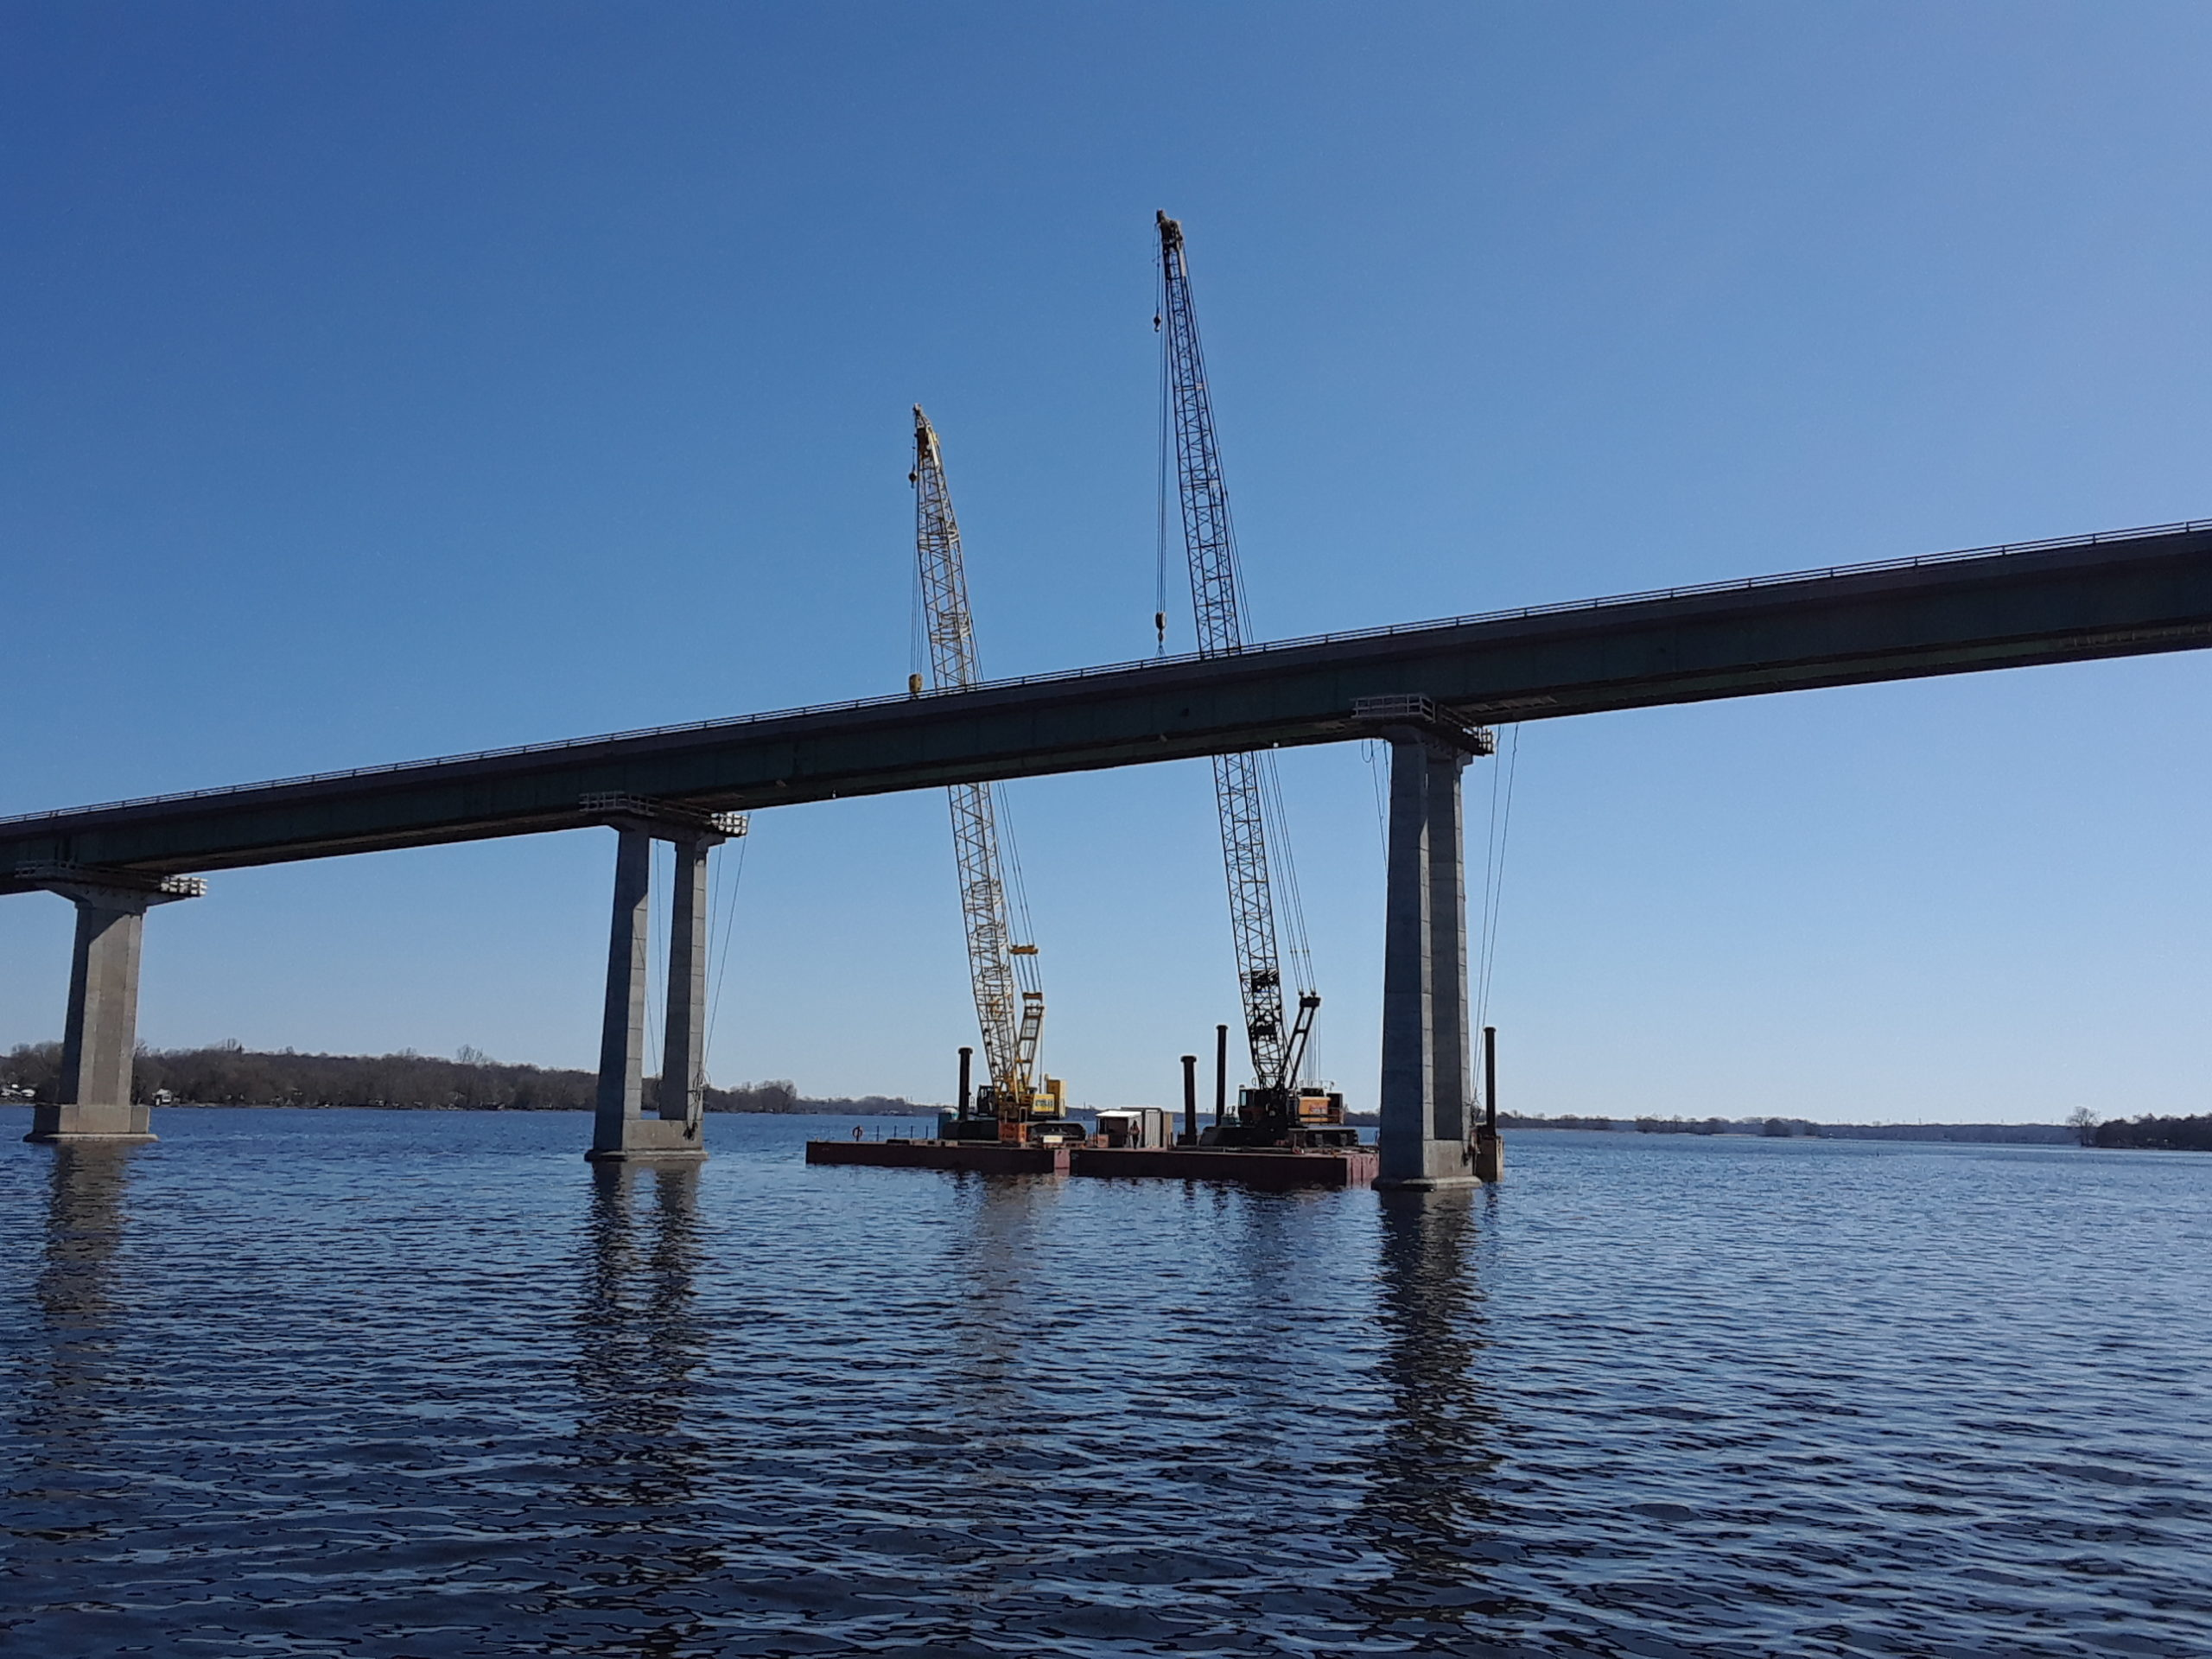 200 ton cranes connected to the first section of girder for removal